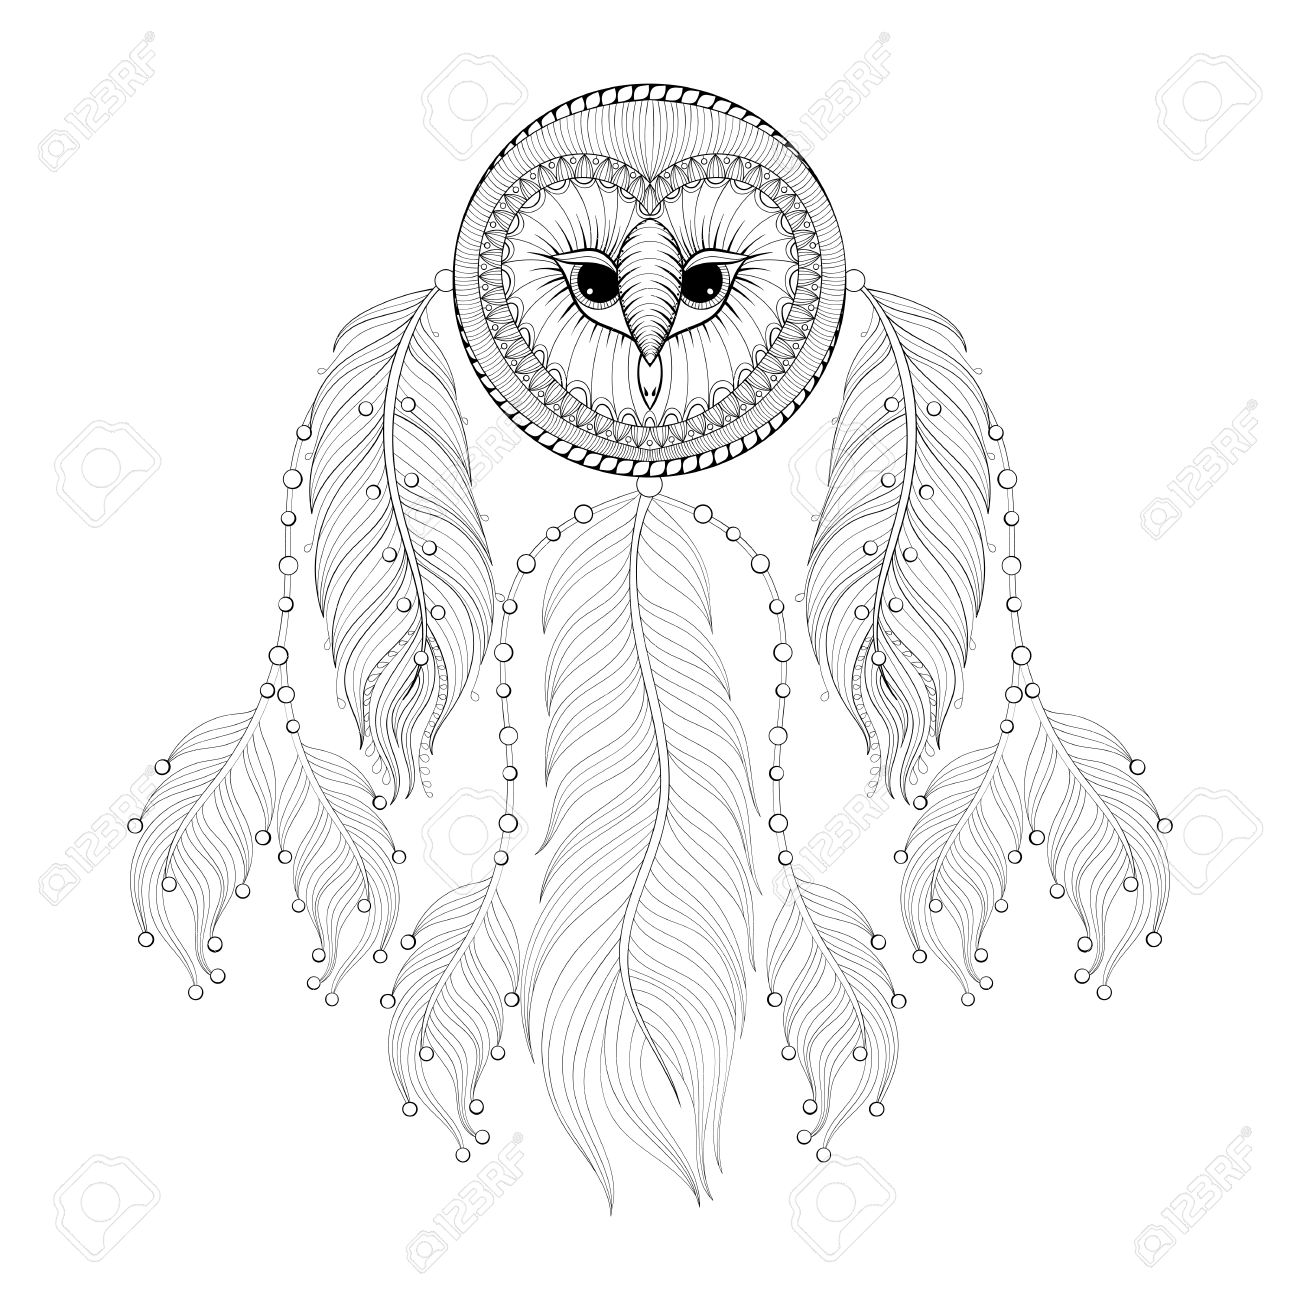 1300x1300 Hand Drawn Dreamcatcher With Tribal Owl Face For Adult Coloring